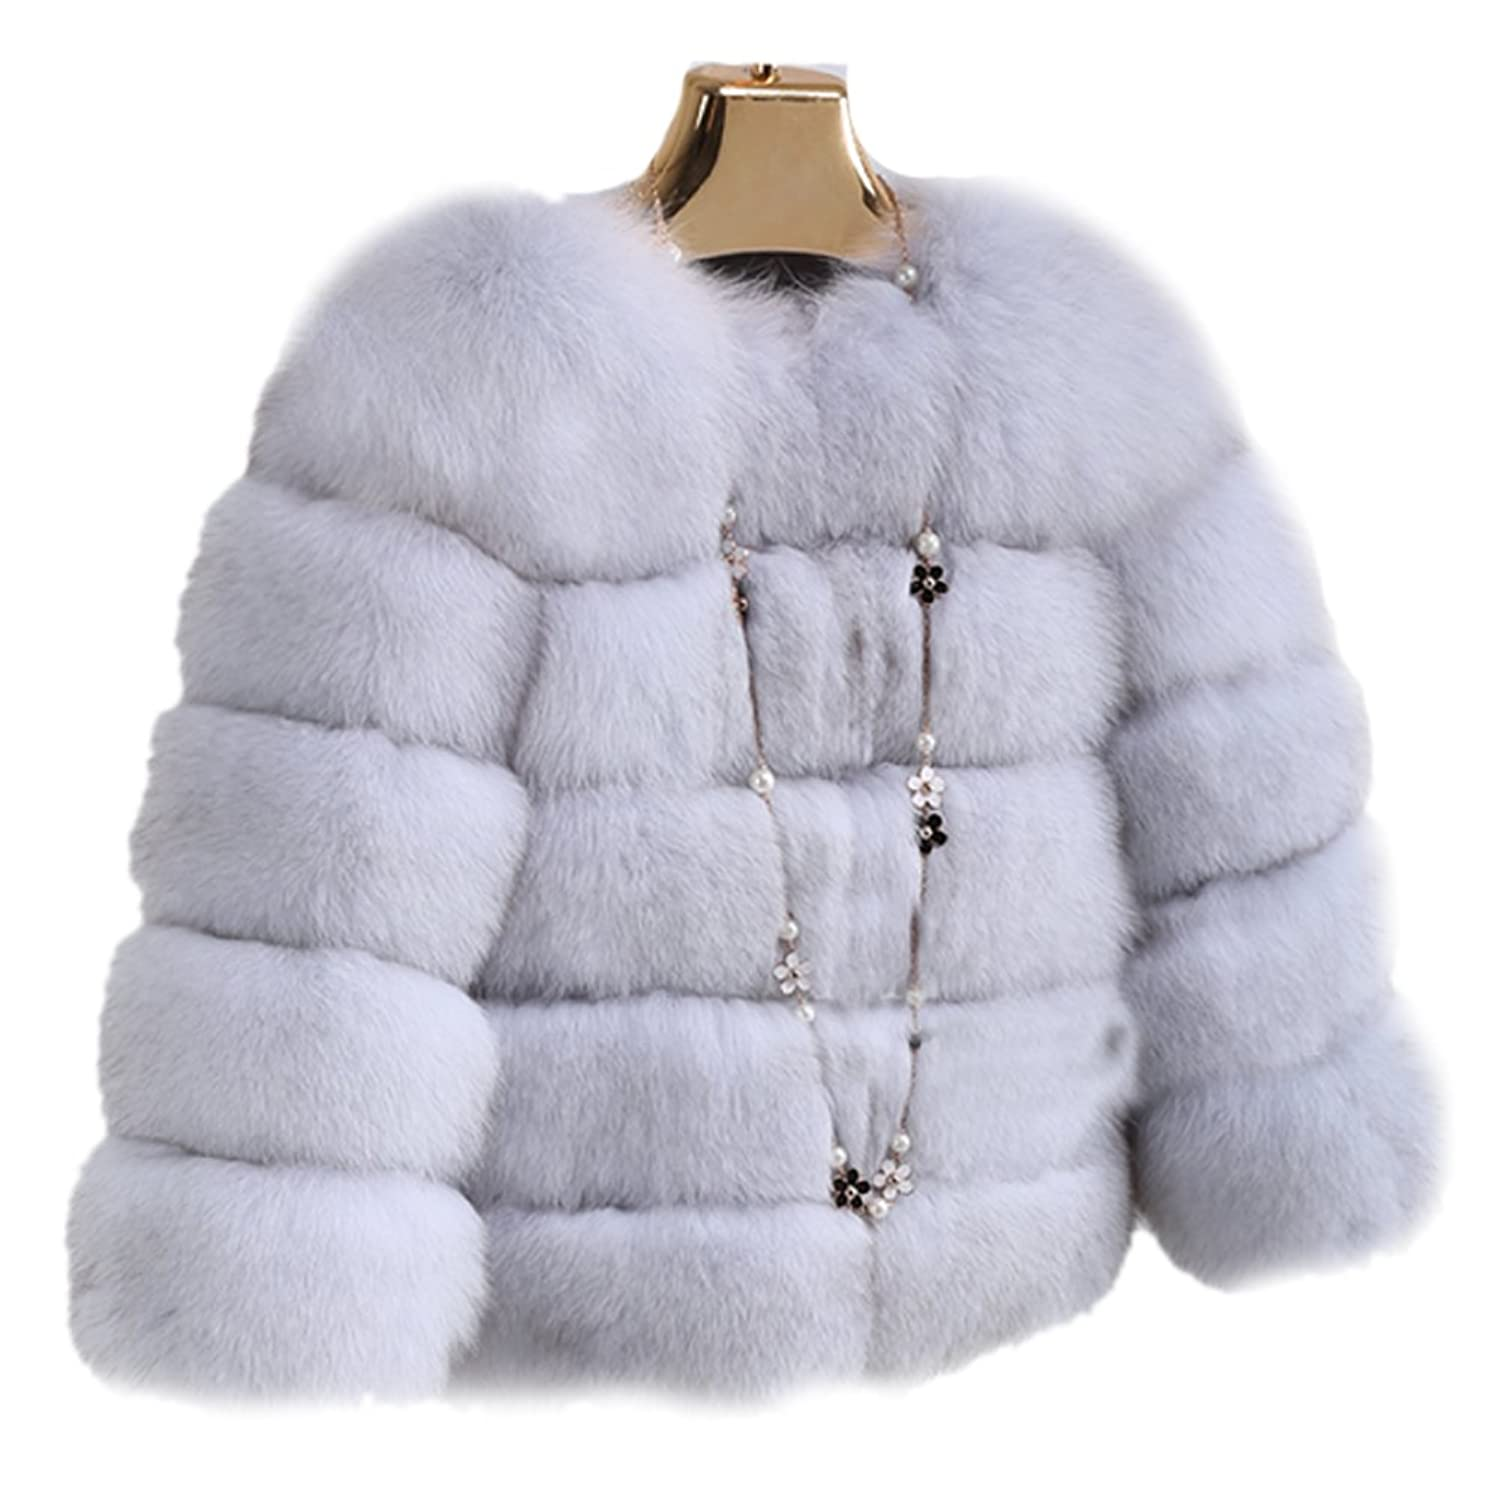 Queenshiny Damen 100% Echte Ganze Fuchs Pelz Mantel Jacken Luxus Winter Mode günstig online kaufen